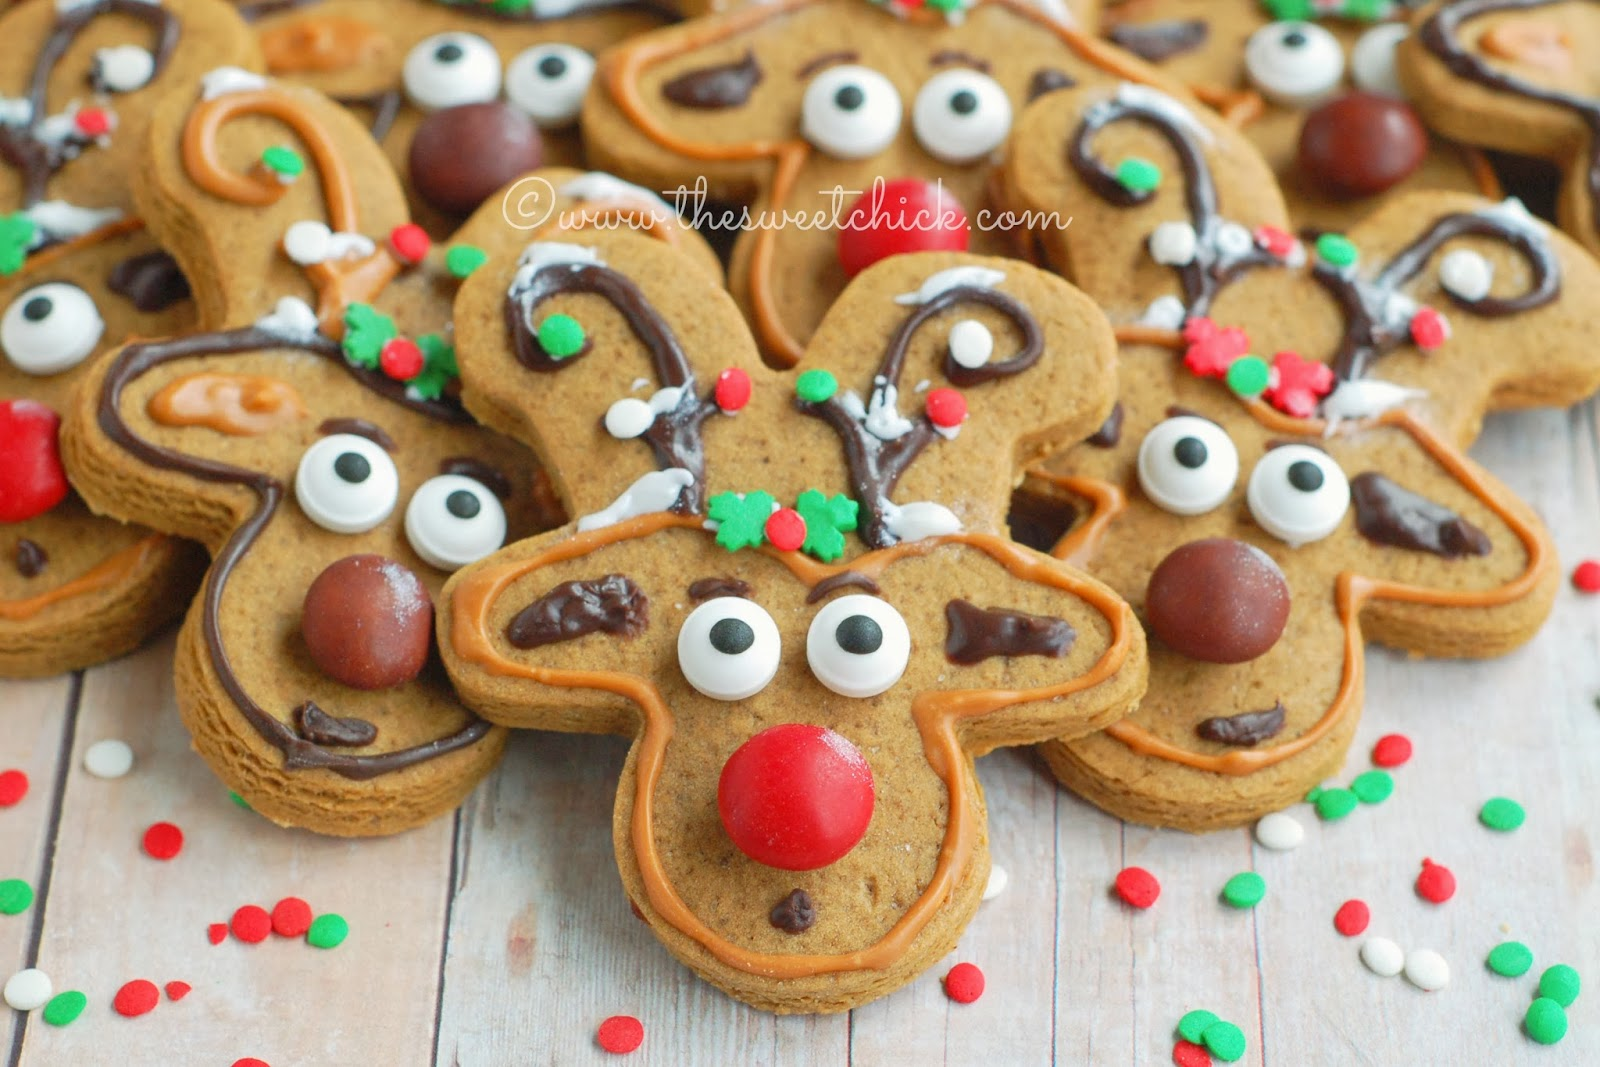 The Sweet Chick: Reindeer Gingerbread Cookies